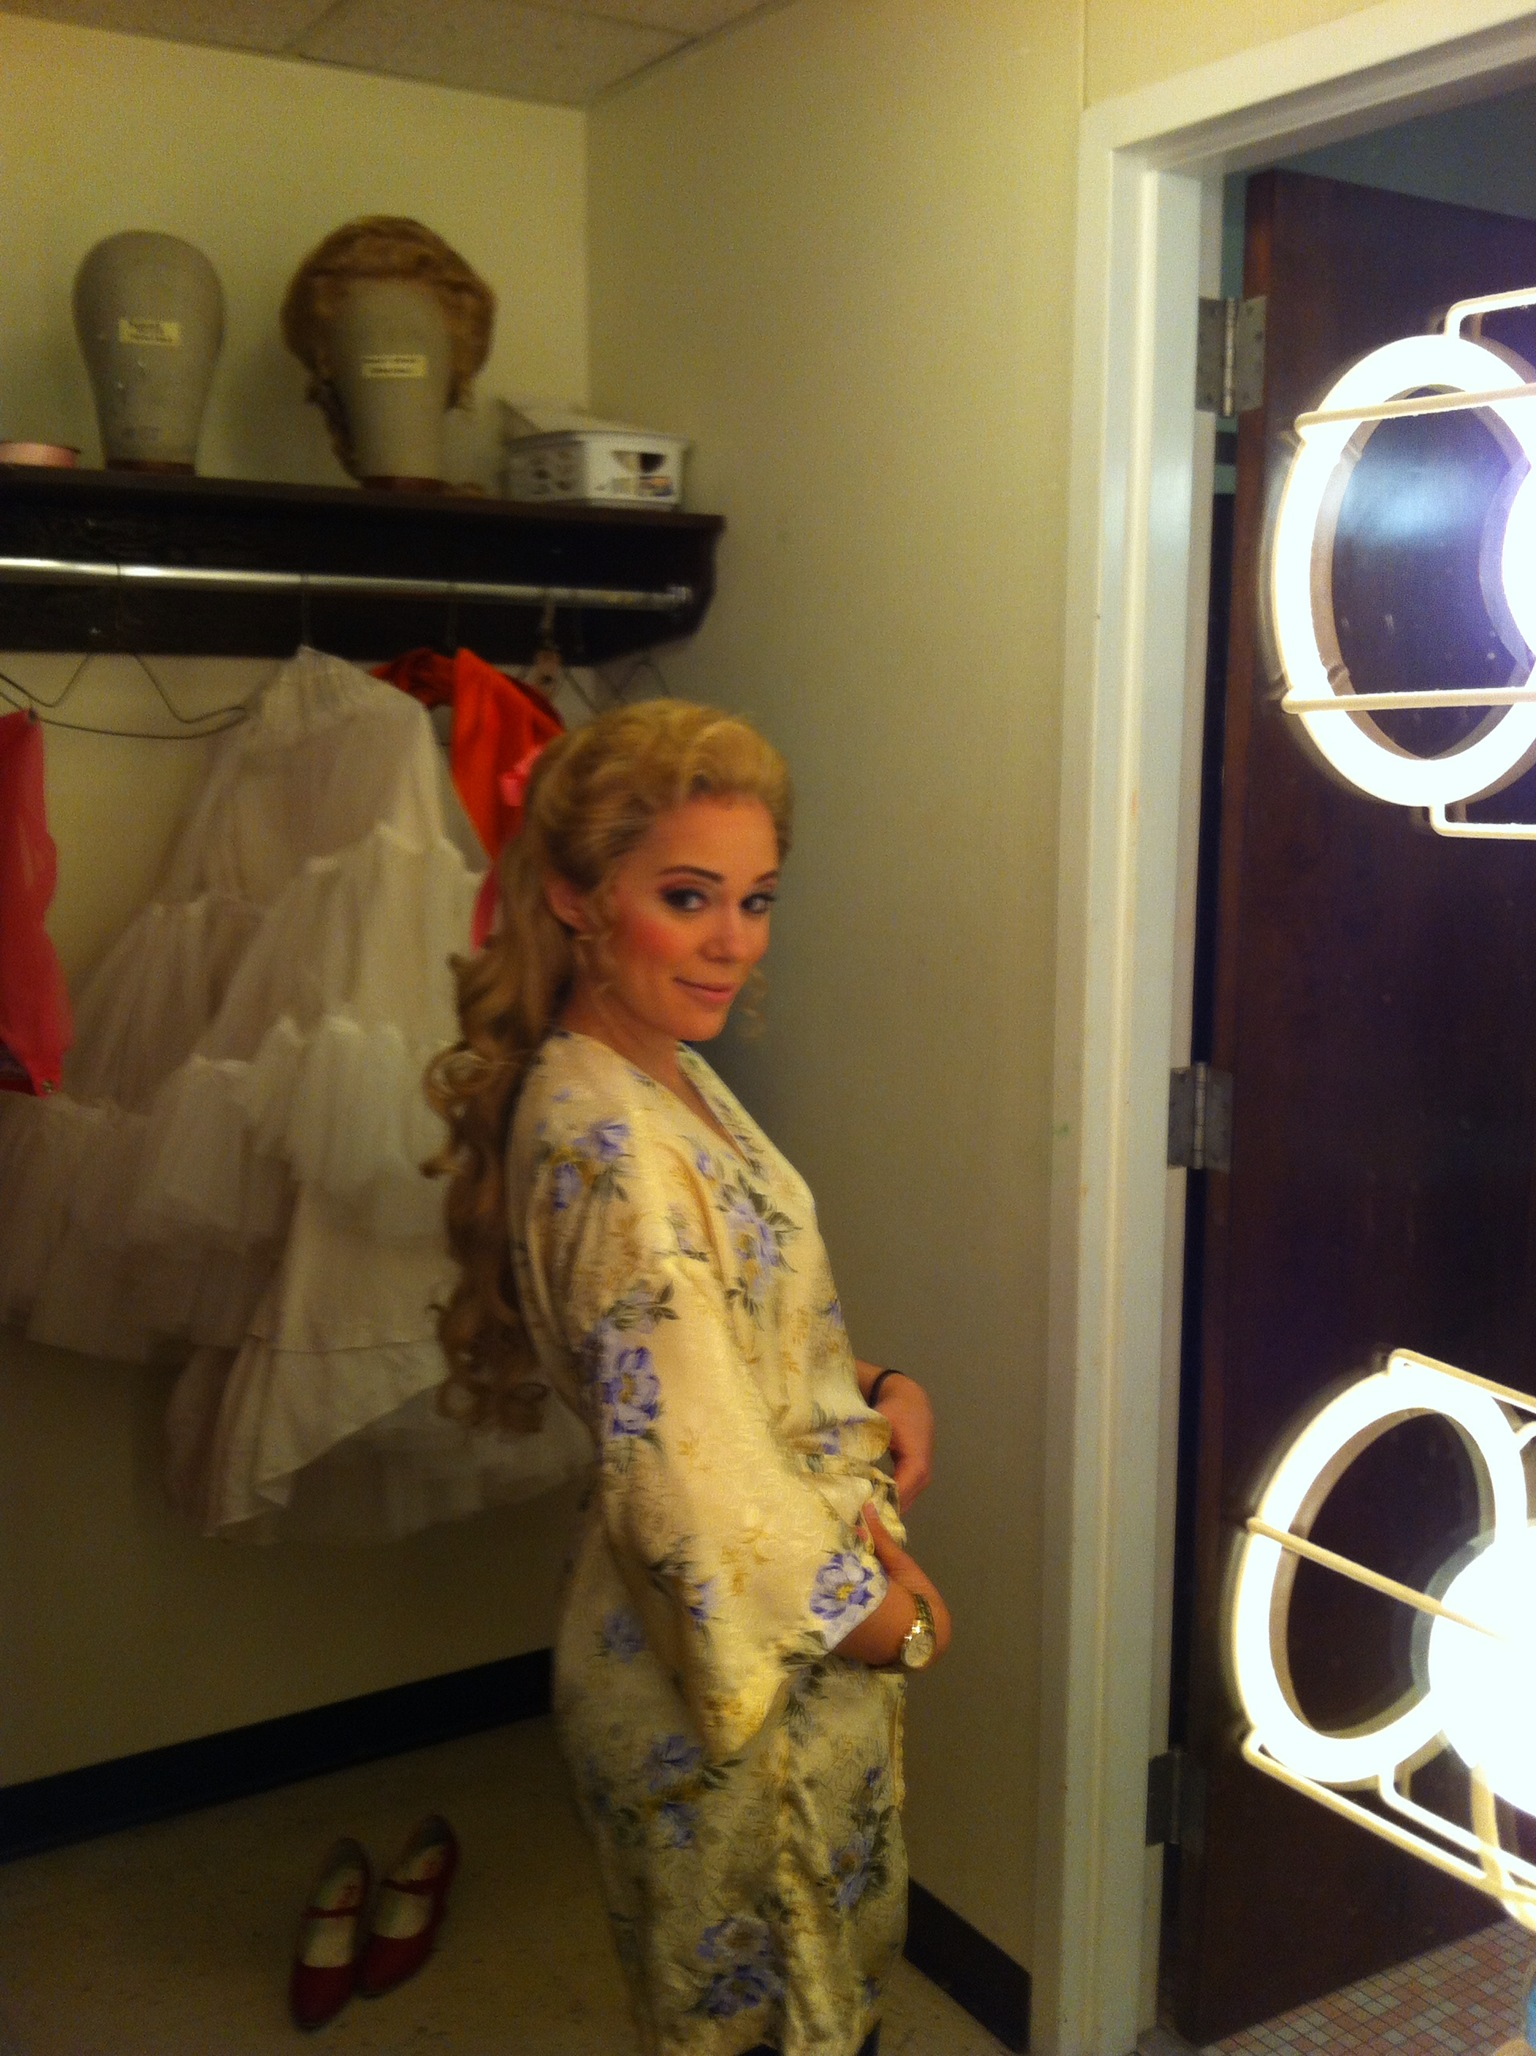 Backstage at Portland Opera